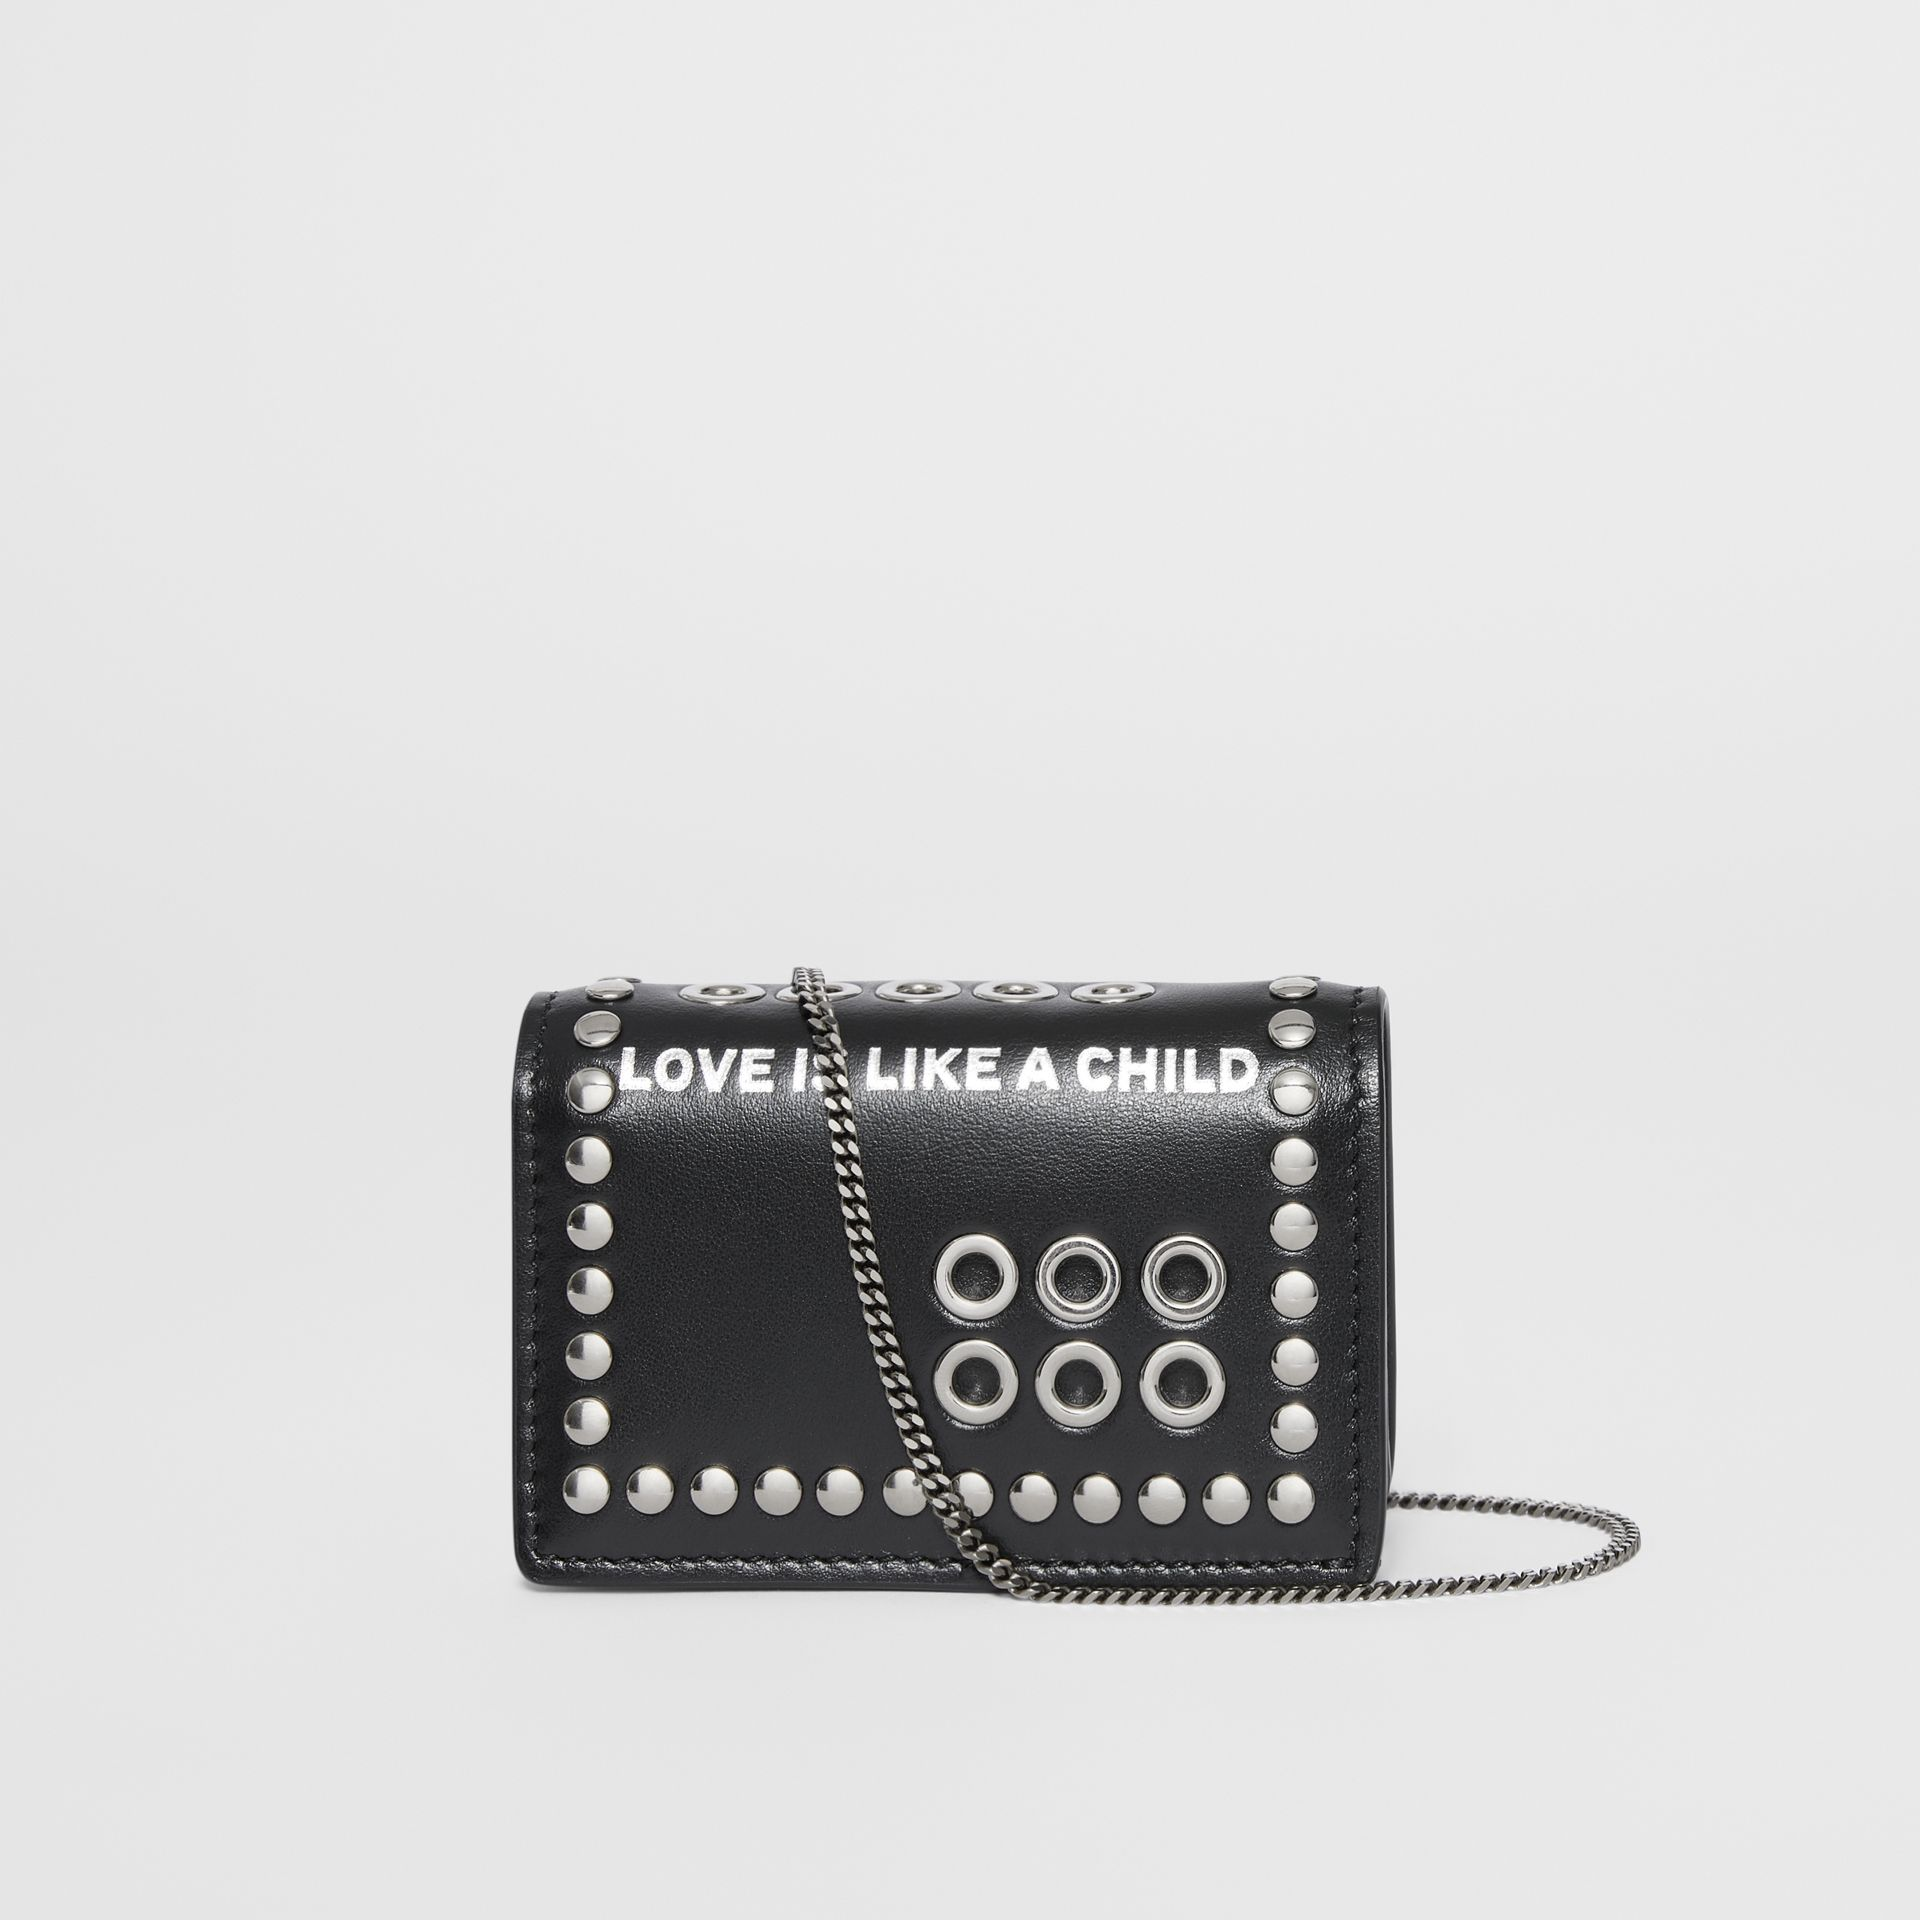 Embellished Leather Card Case with Detachable Strap in Black - Women | Burberry Australia - gallery image 8